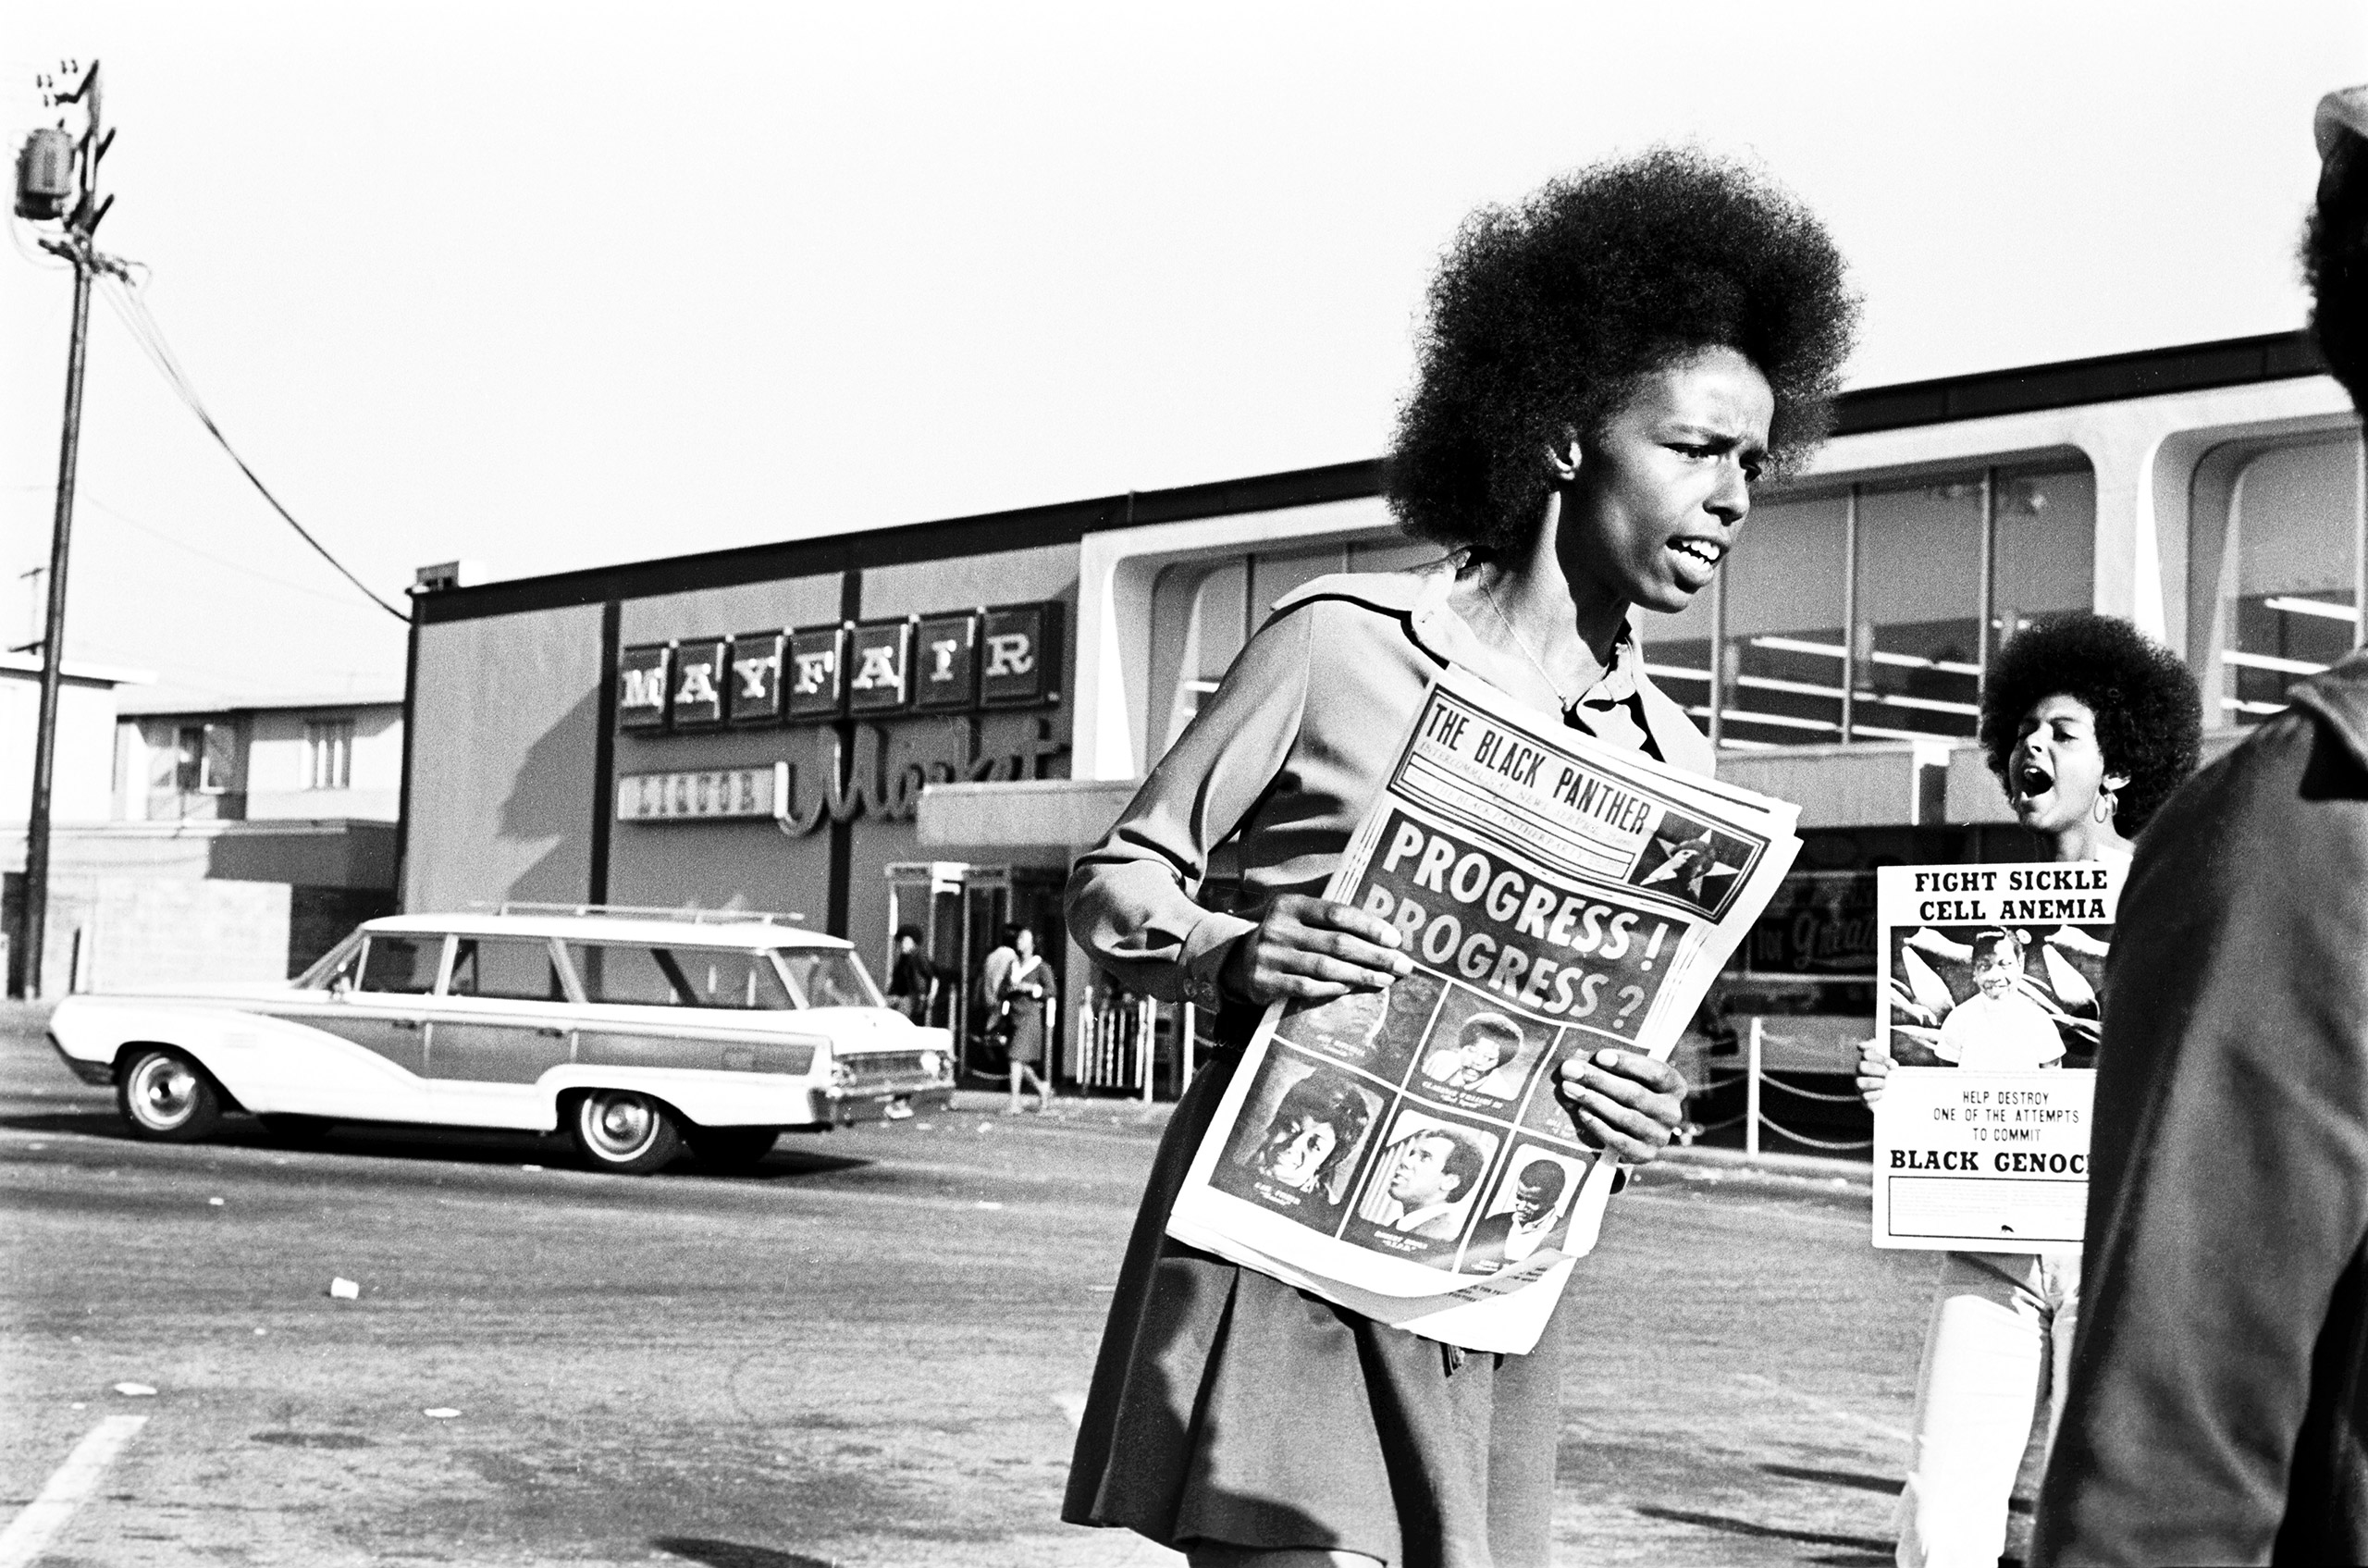 Gloria Abernathy selling papers at the Mayfair supermarket boycott, Oakland, 1971. Tamara Lacey is in the background holding a poster.